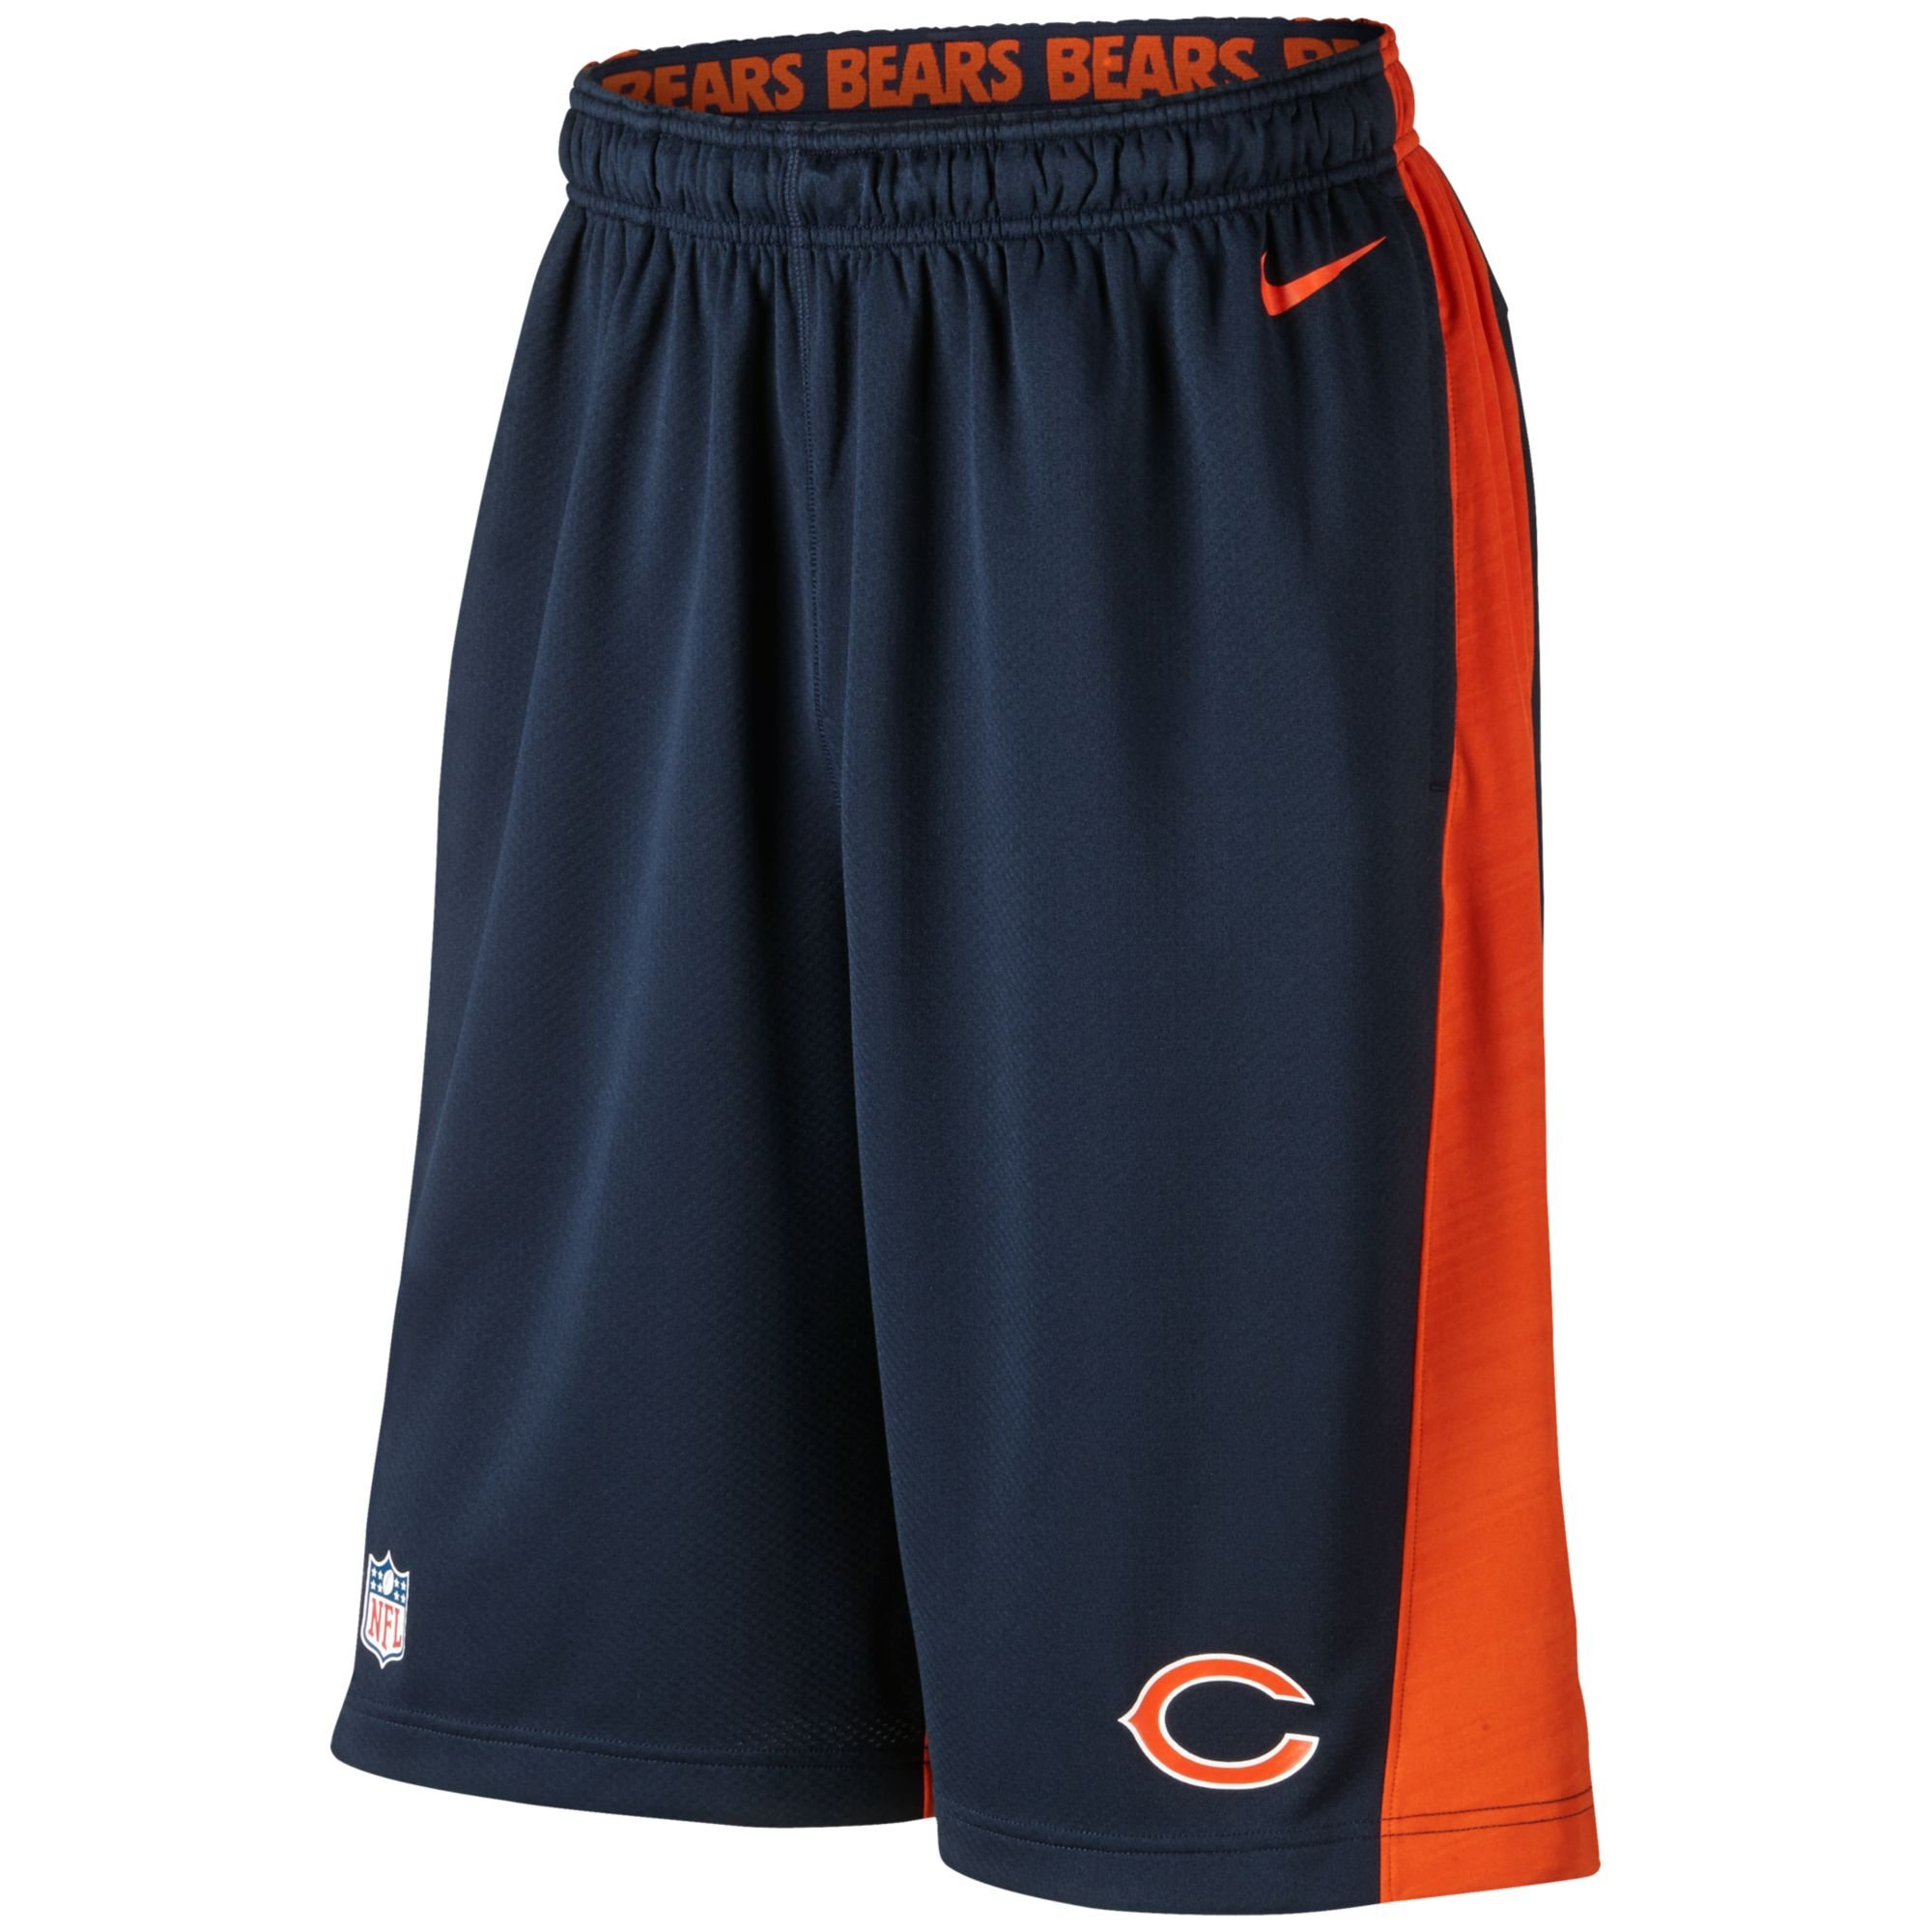 Nike Men's Chicago Bears Fly Xl Dri-fit Shorts in Orange ...